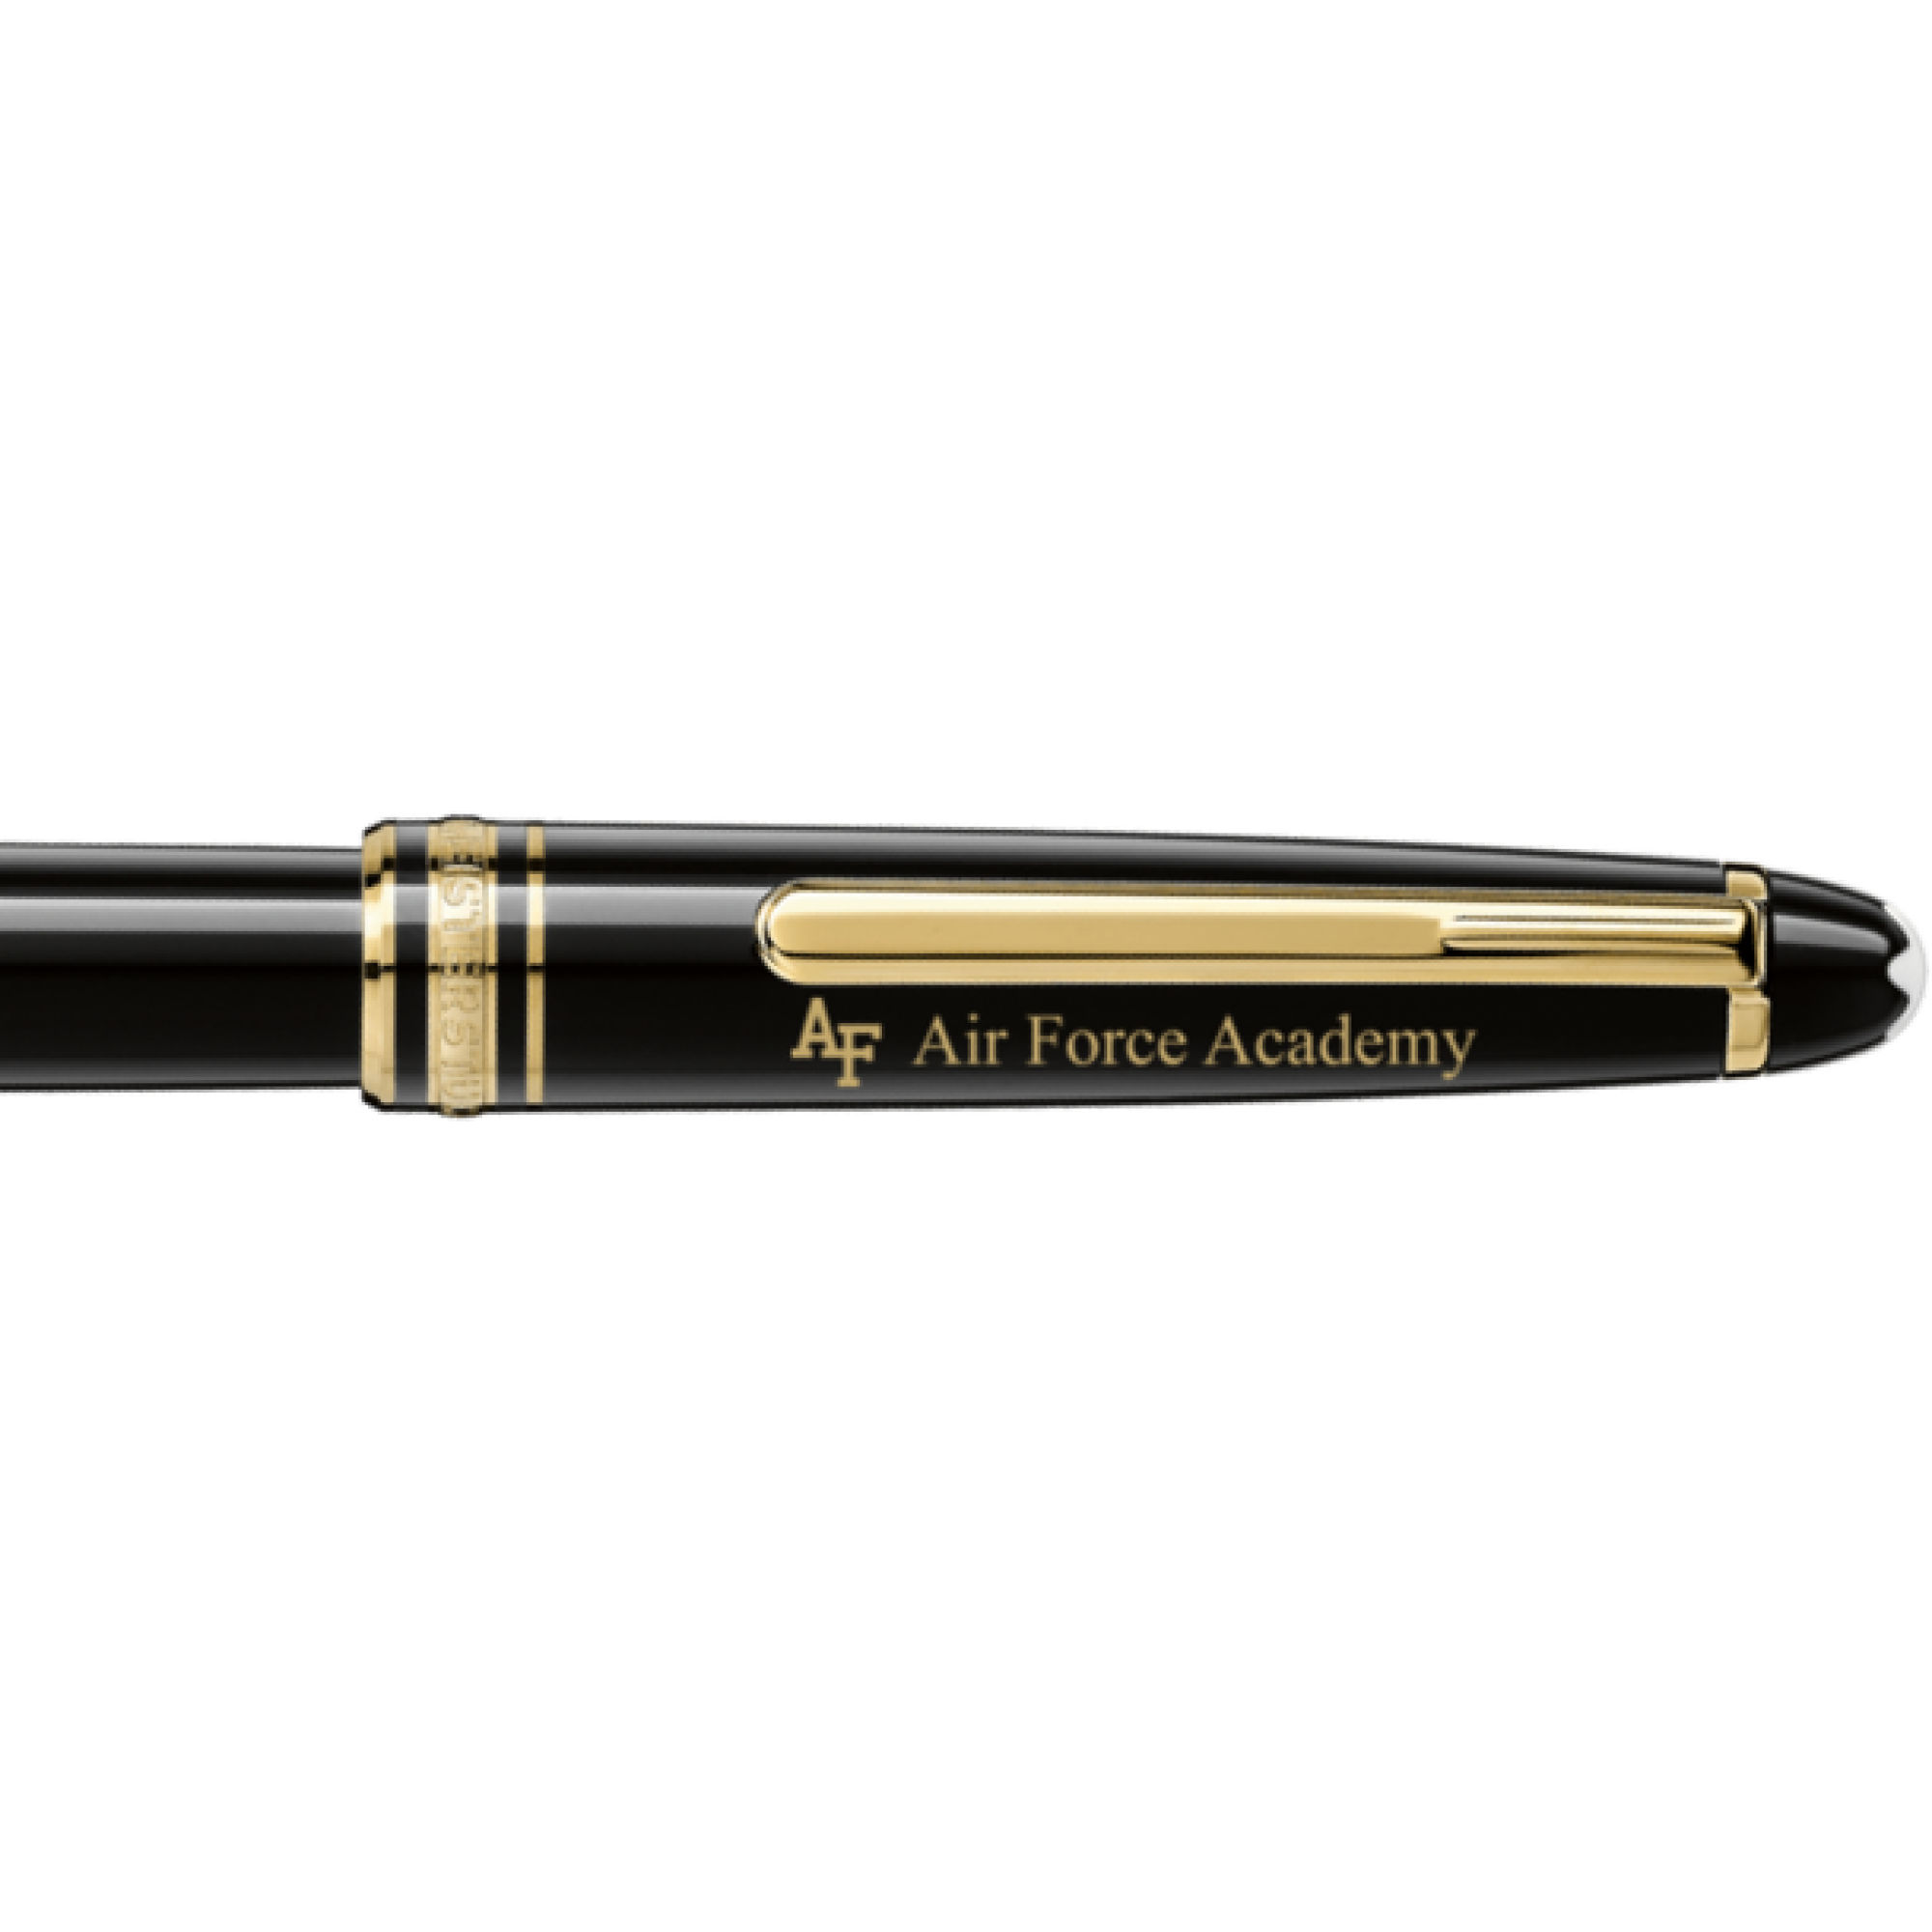 US Air Force Academy Montblanc Meisterstück Classique Rollerball Pen in Gold